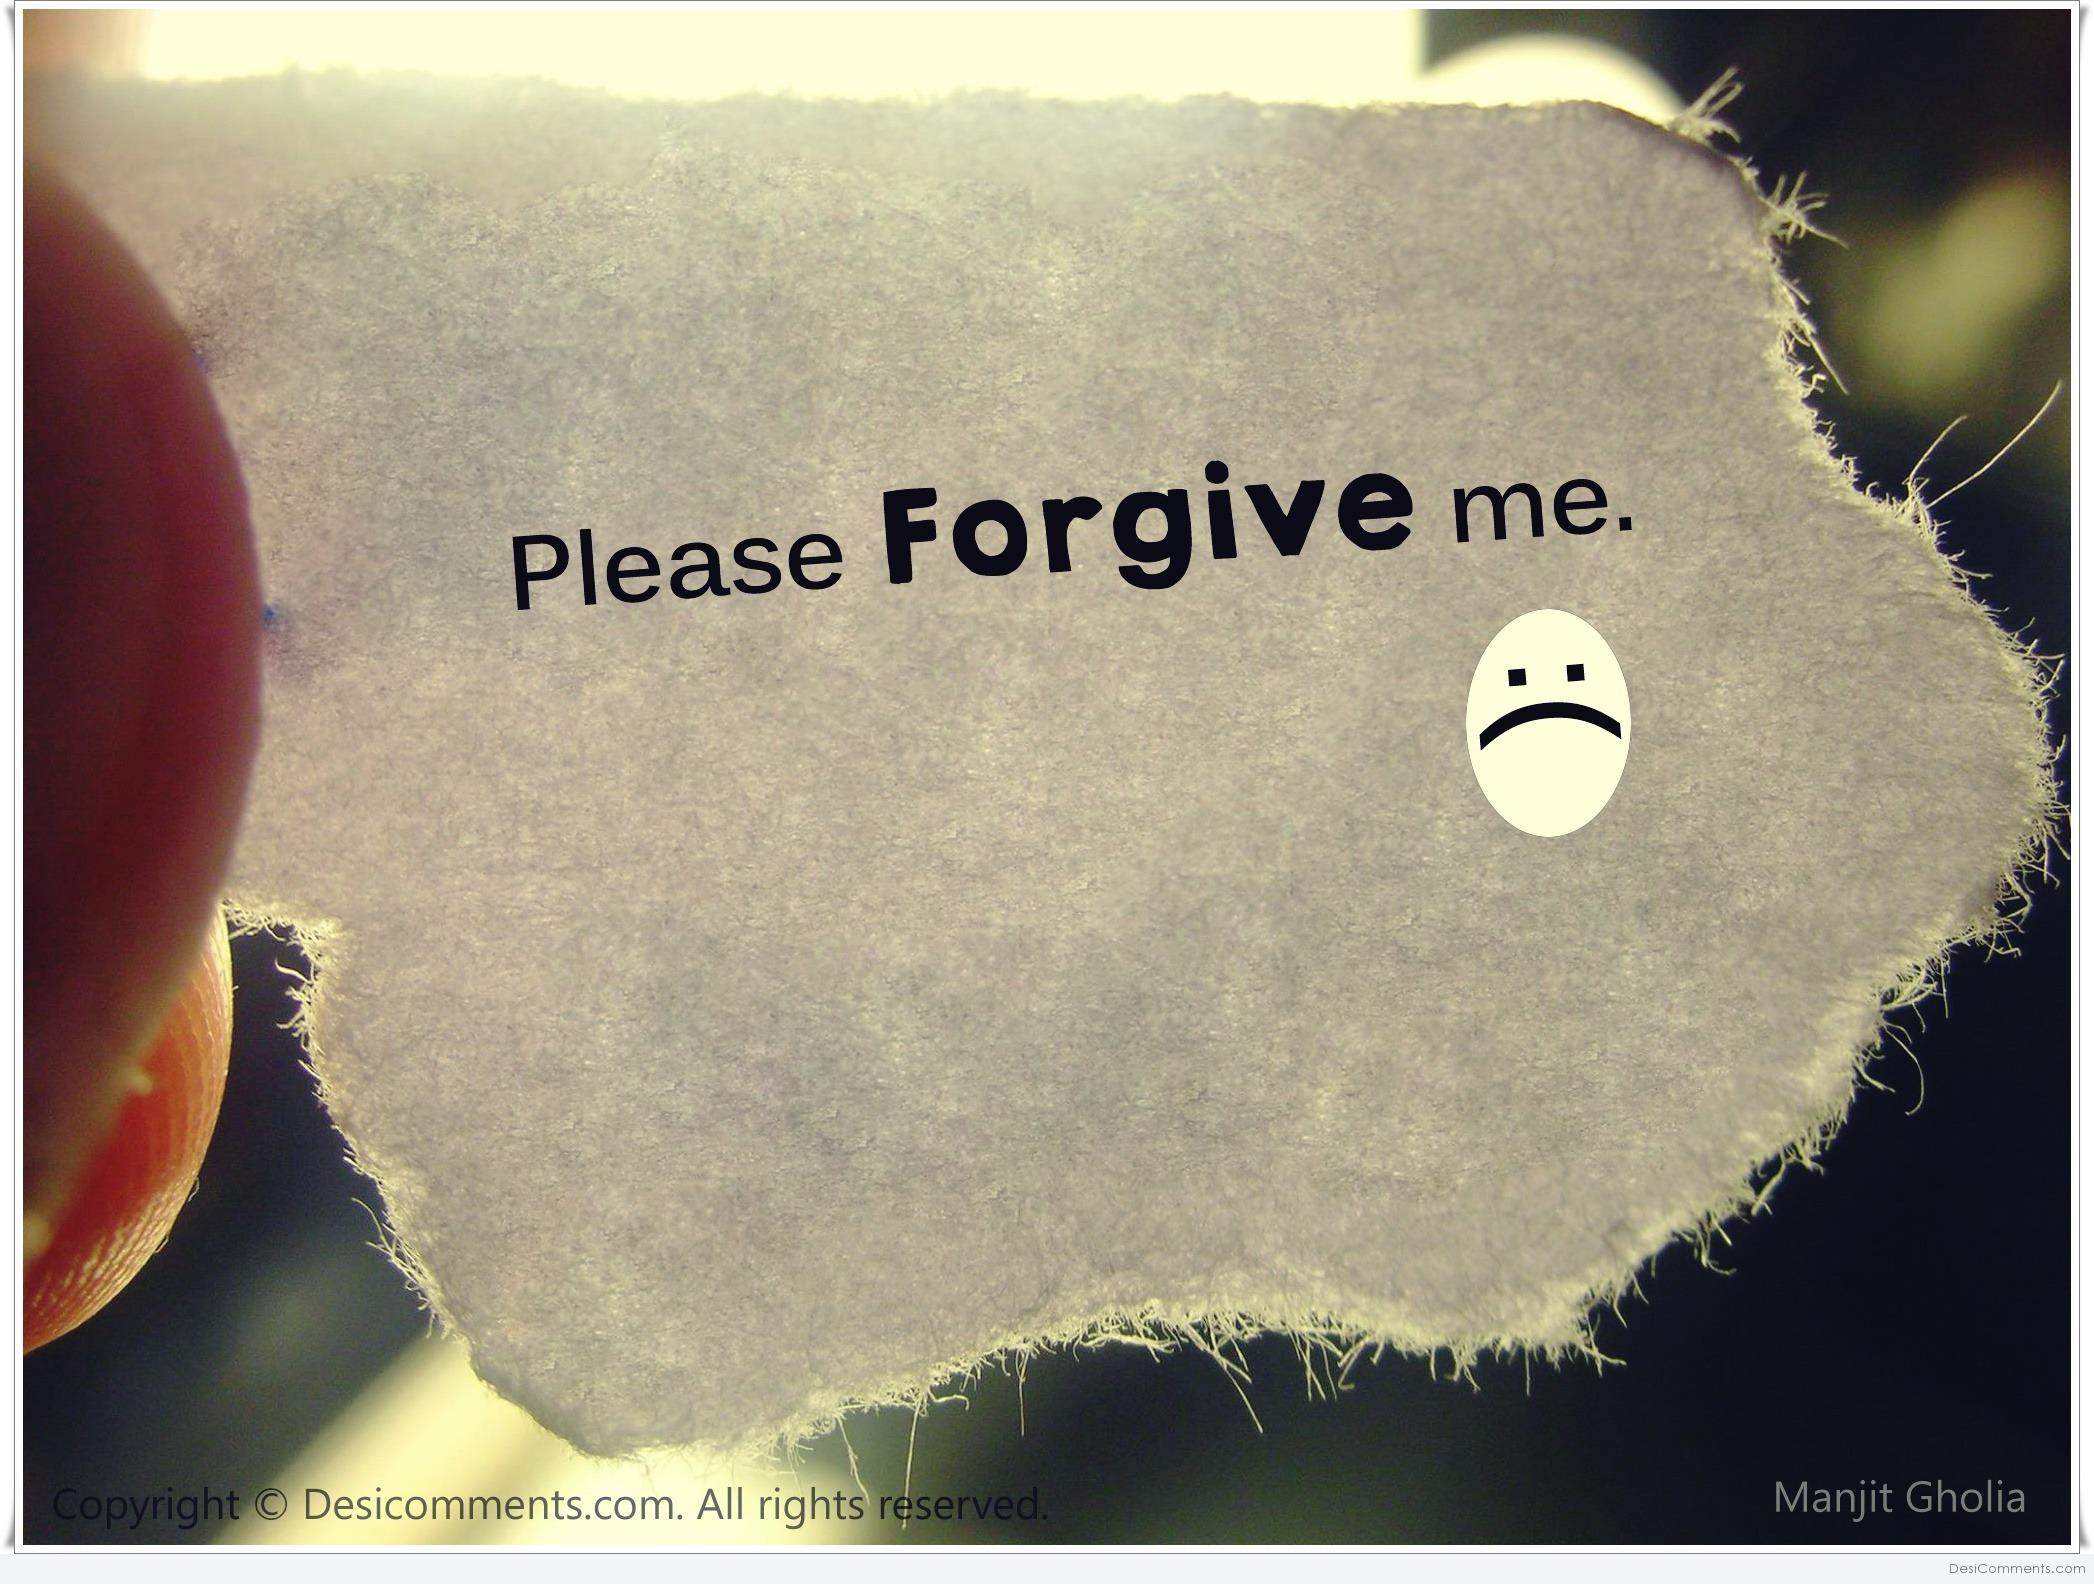 Please Forgive Me - DesiComments.com